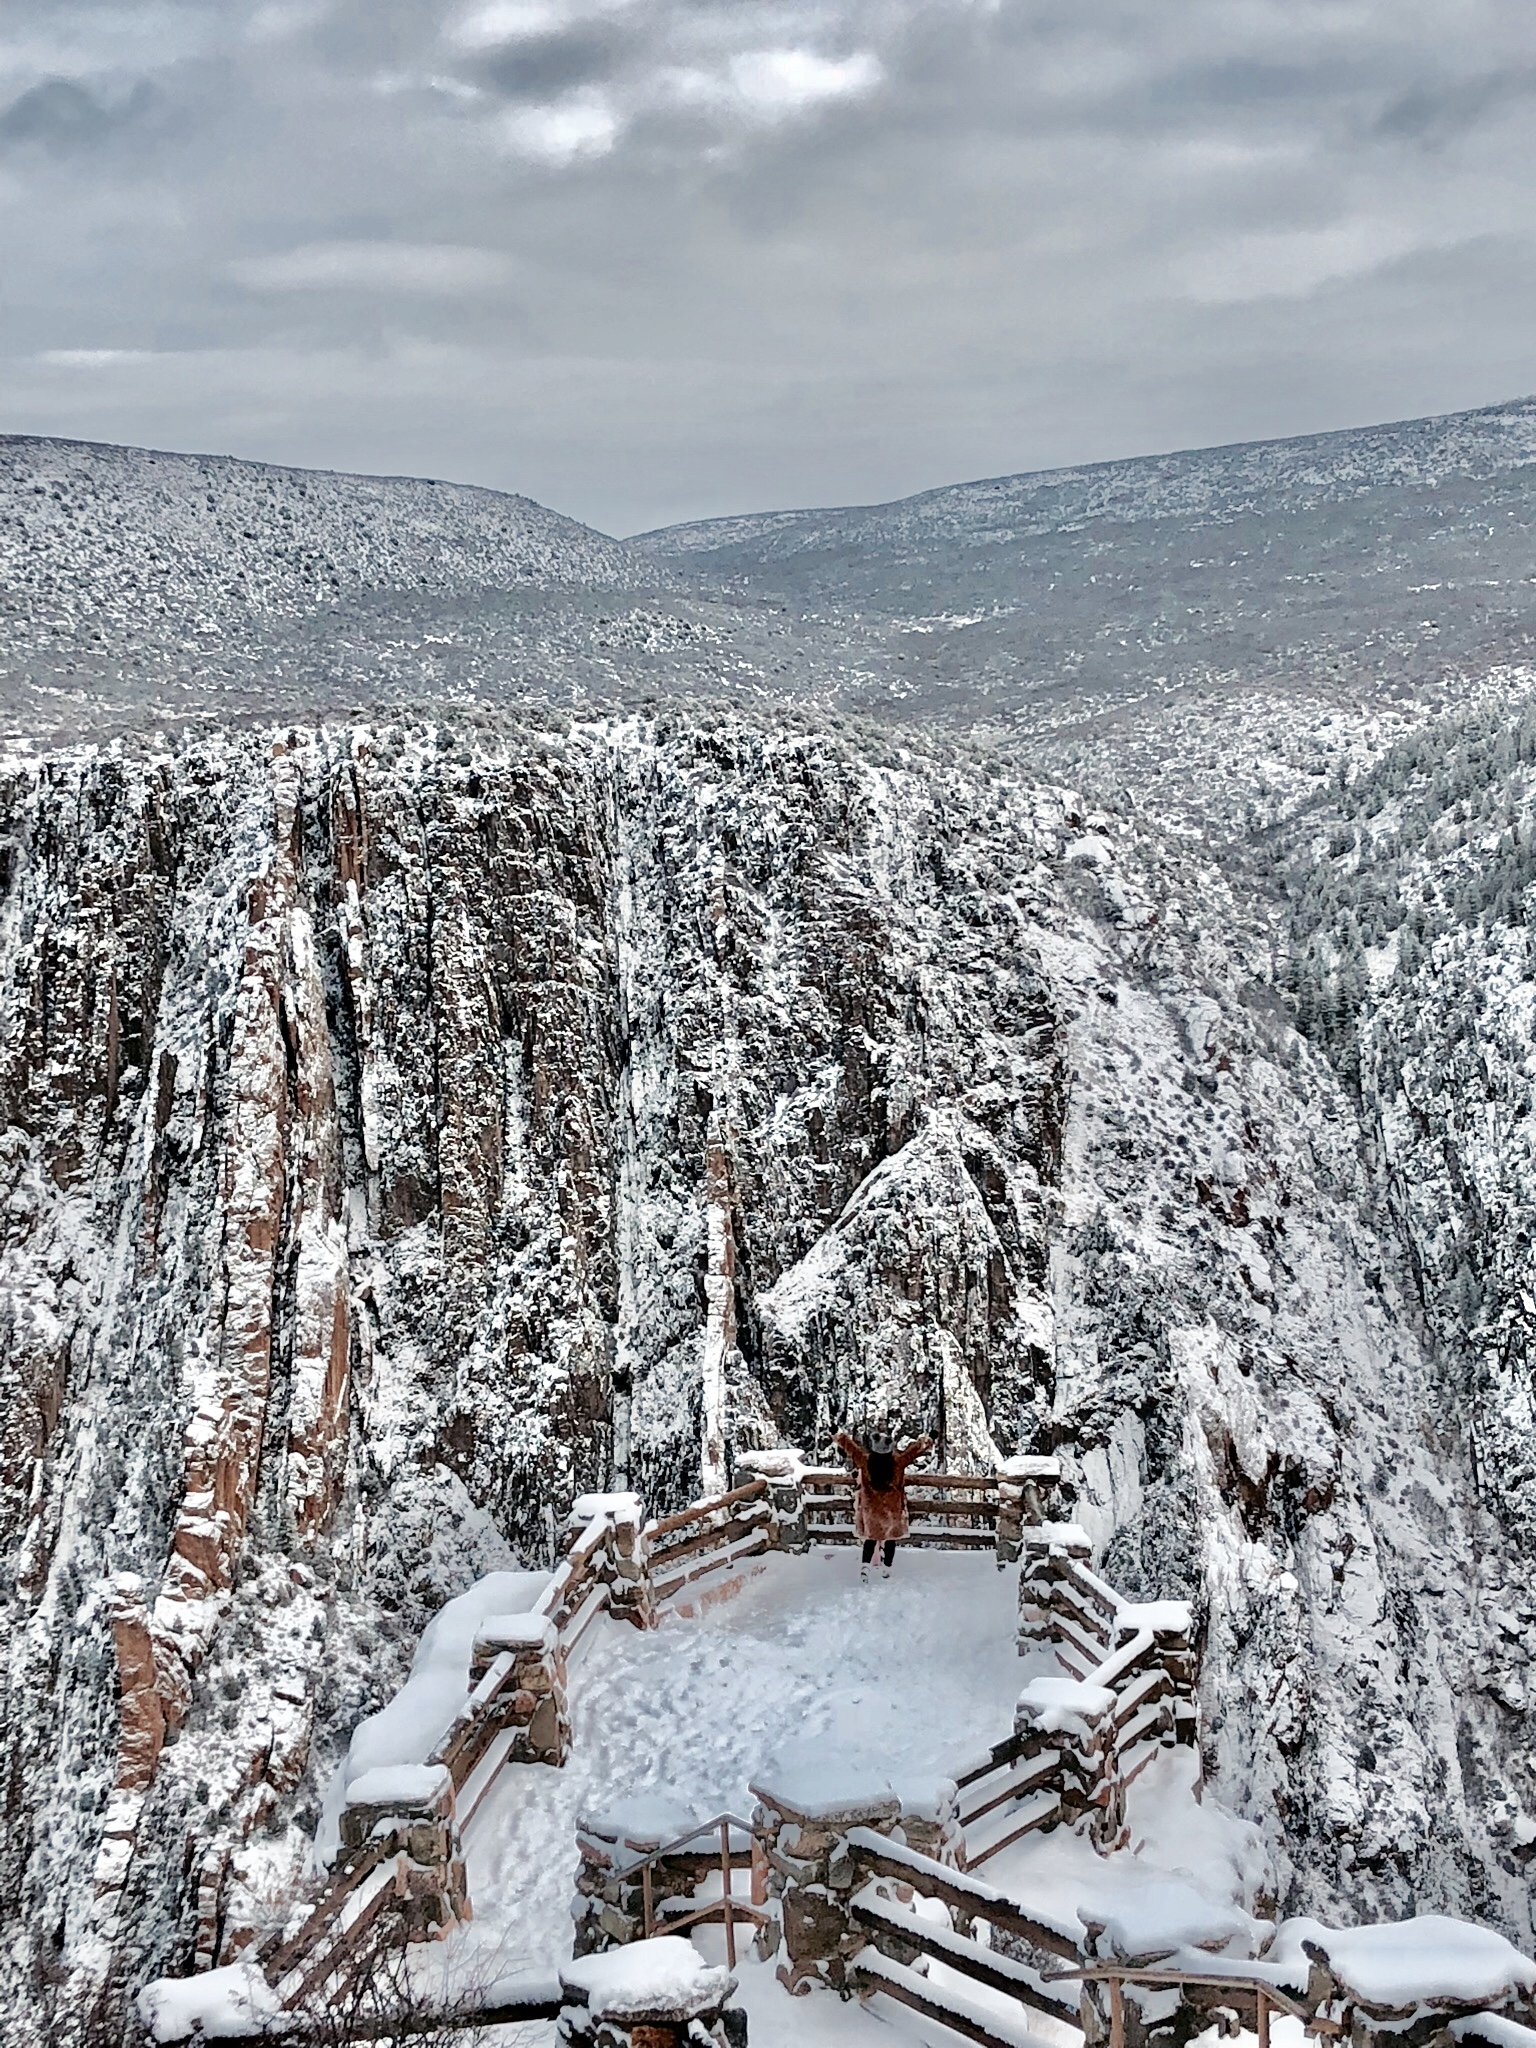 BLACK CANYON OF GUNNISION NATIONAL PARK - WOW WOW AND WOW!The Grand Canyon of Colorado.We were not expecting this stunning canyon to be dusted with snow, although half of the national park was shut down due to the snow and extreme weather conditions, the first few view points were open and simply breathtaking. A a few hours drive from Denver and Vail, however it was worth every minute!Just check out this view!